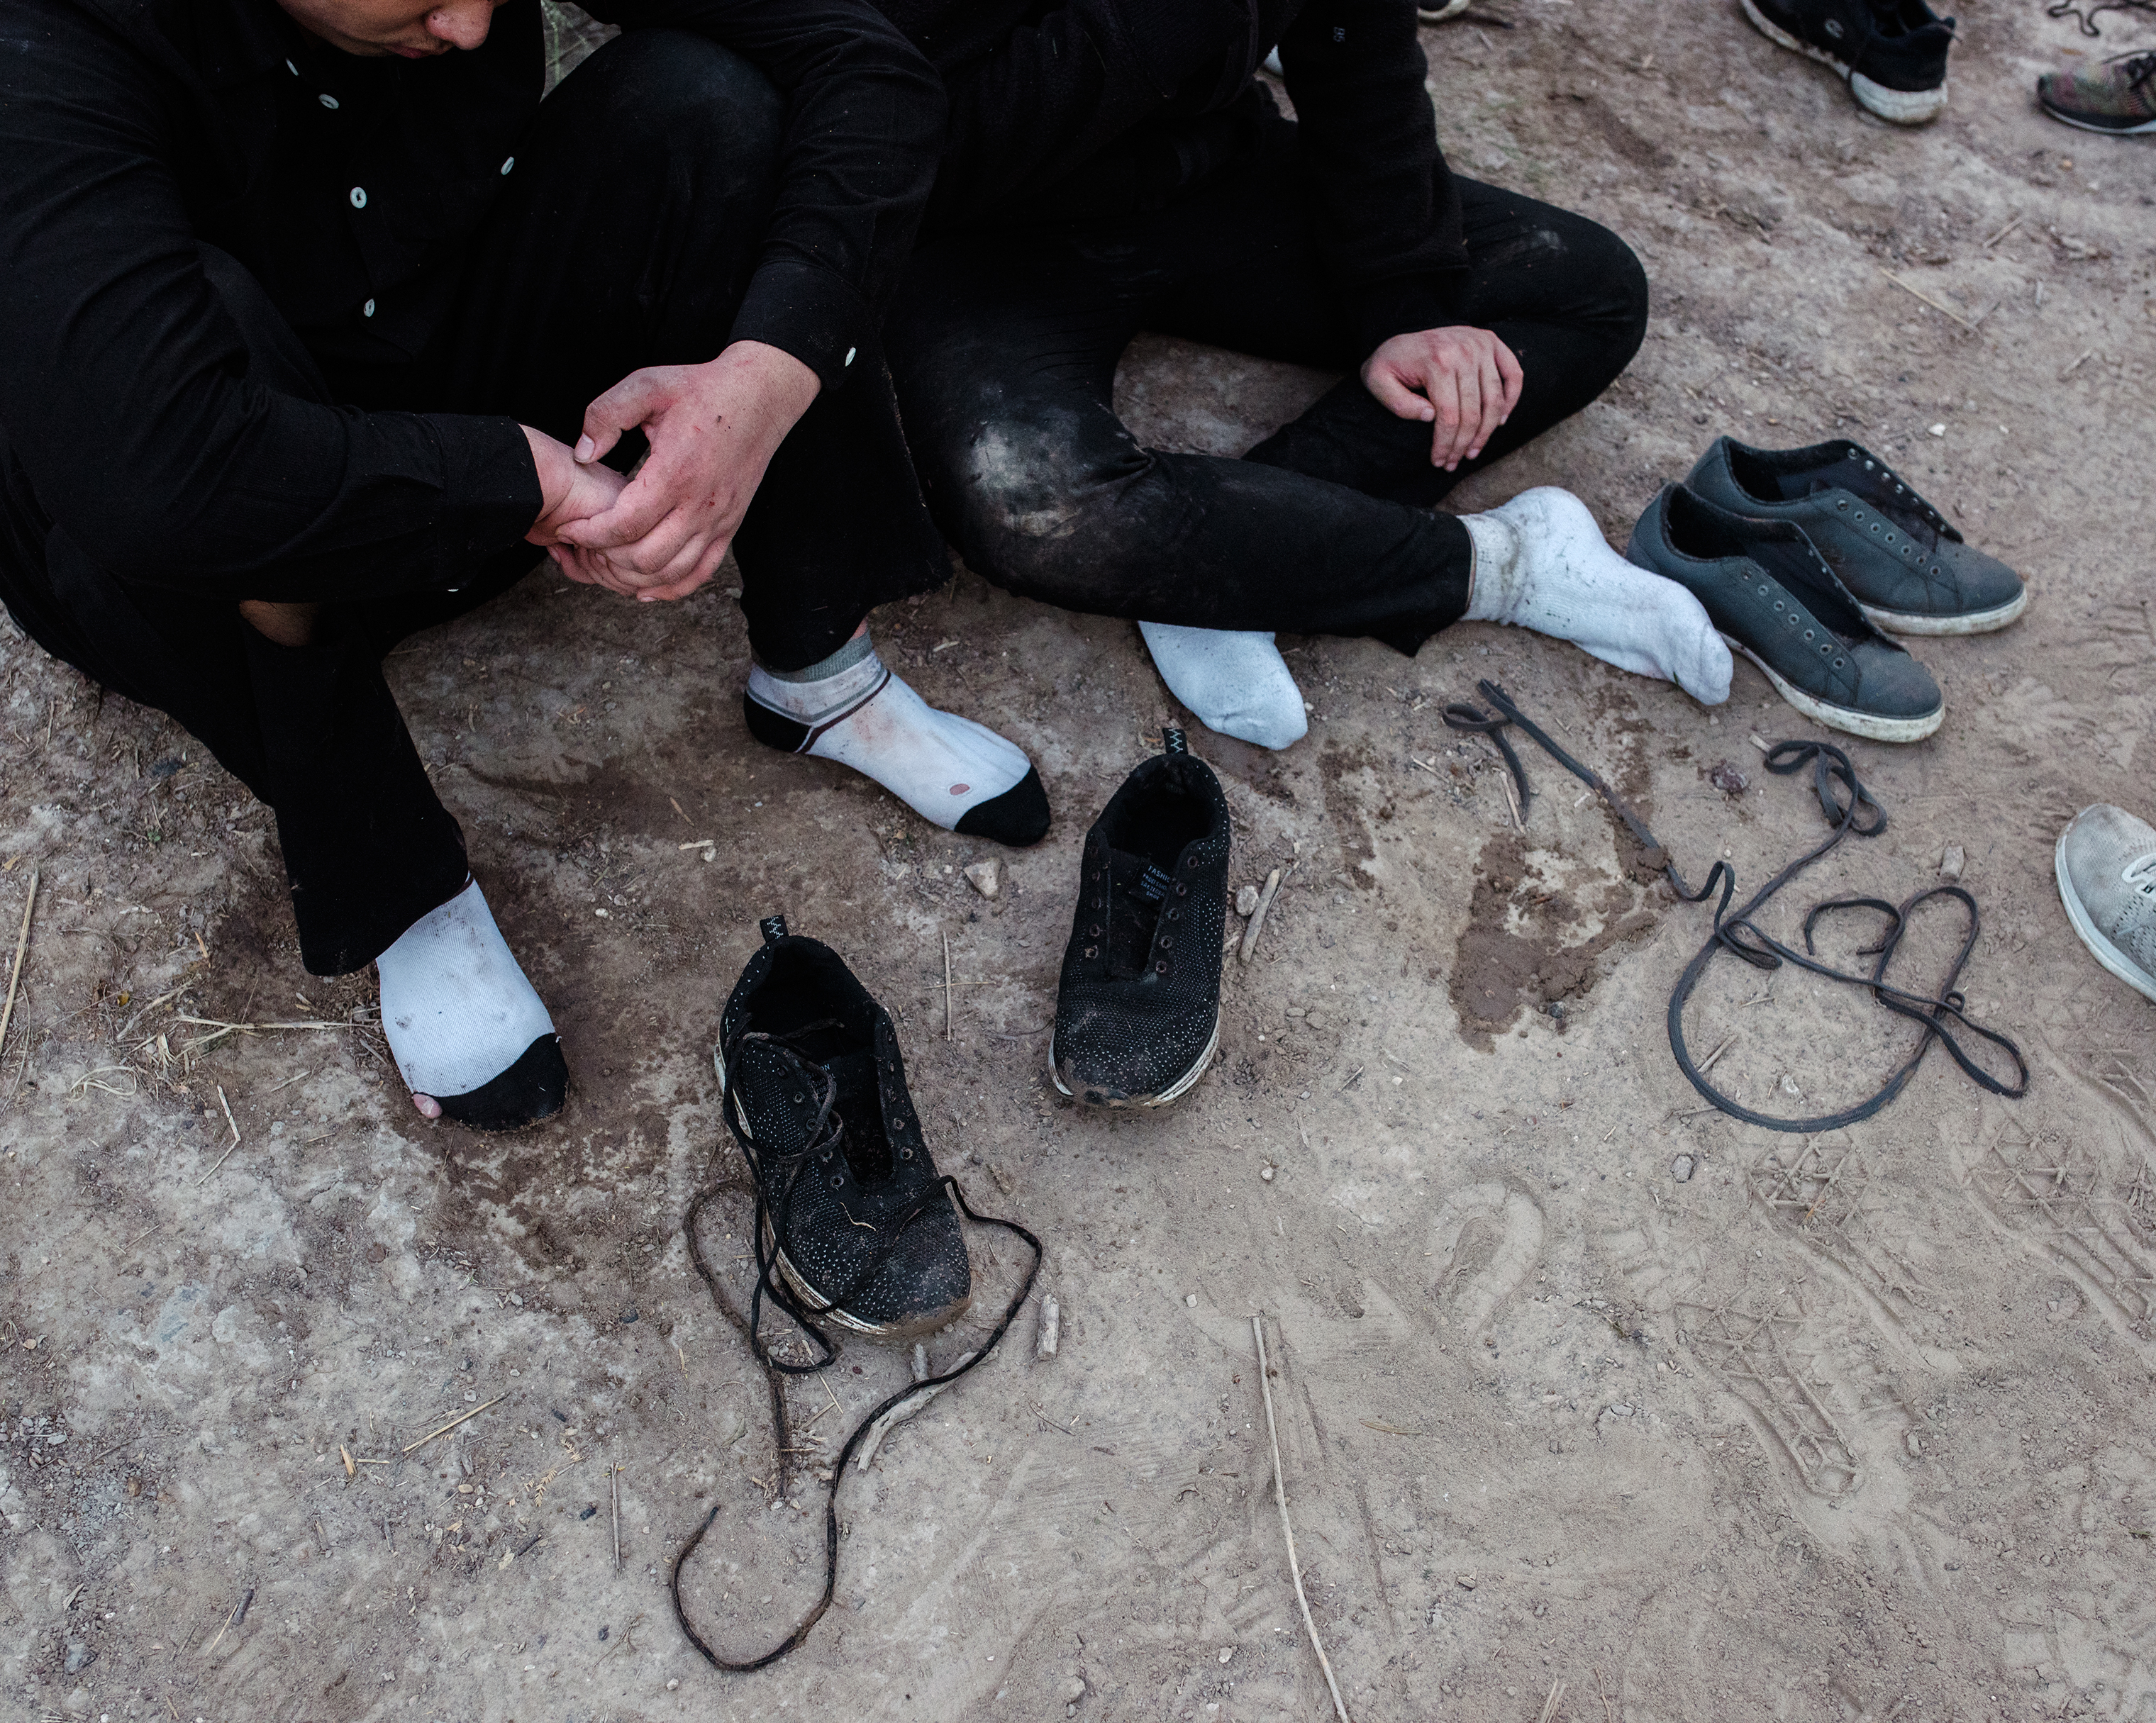 Members of a group of migrants from China and Guatemala unlace their shoes before being taken into custody, after illegally crossing the border through the Rio Grande, on Sept. 25.